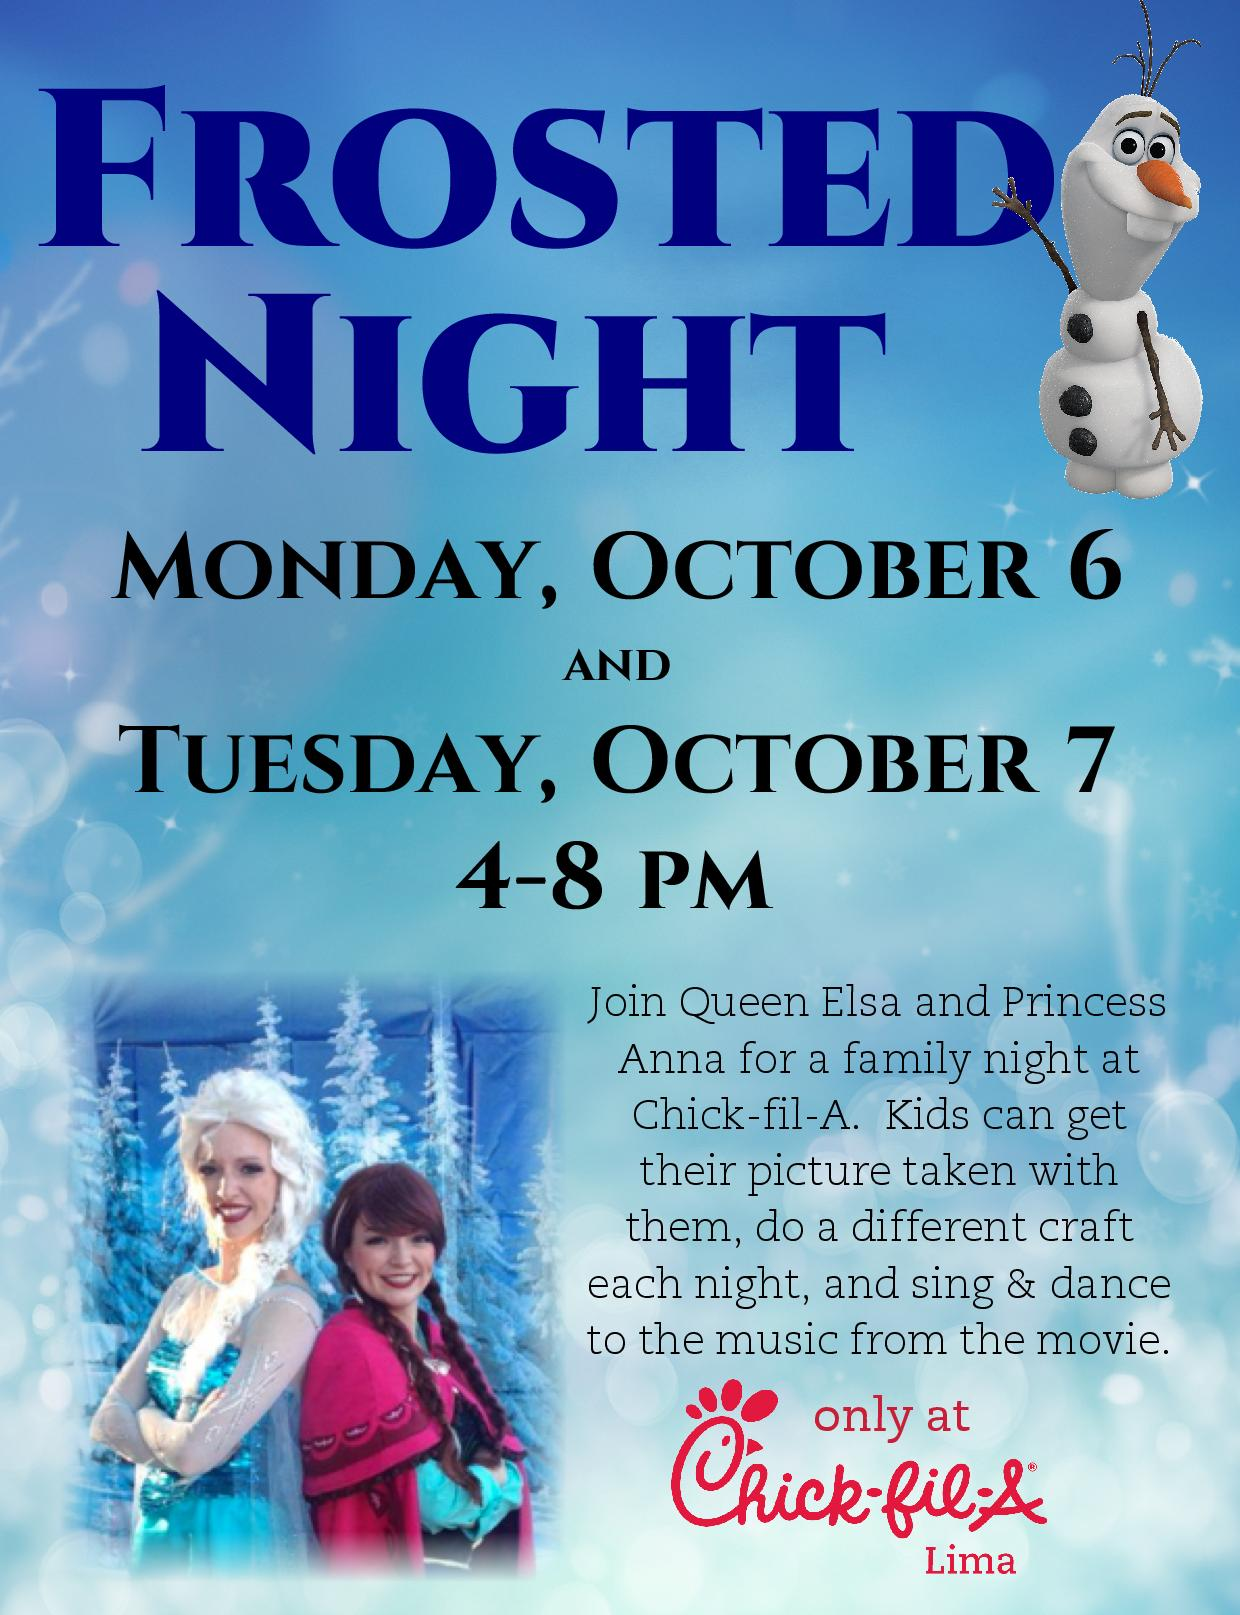 Preschool Education Music Songs Circle Time > Calendar Chick Fil A At Lima To Host Frozen Themed Fun 106 And 107